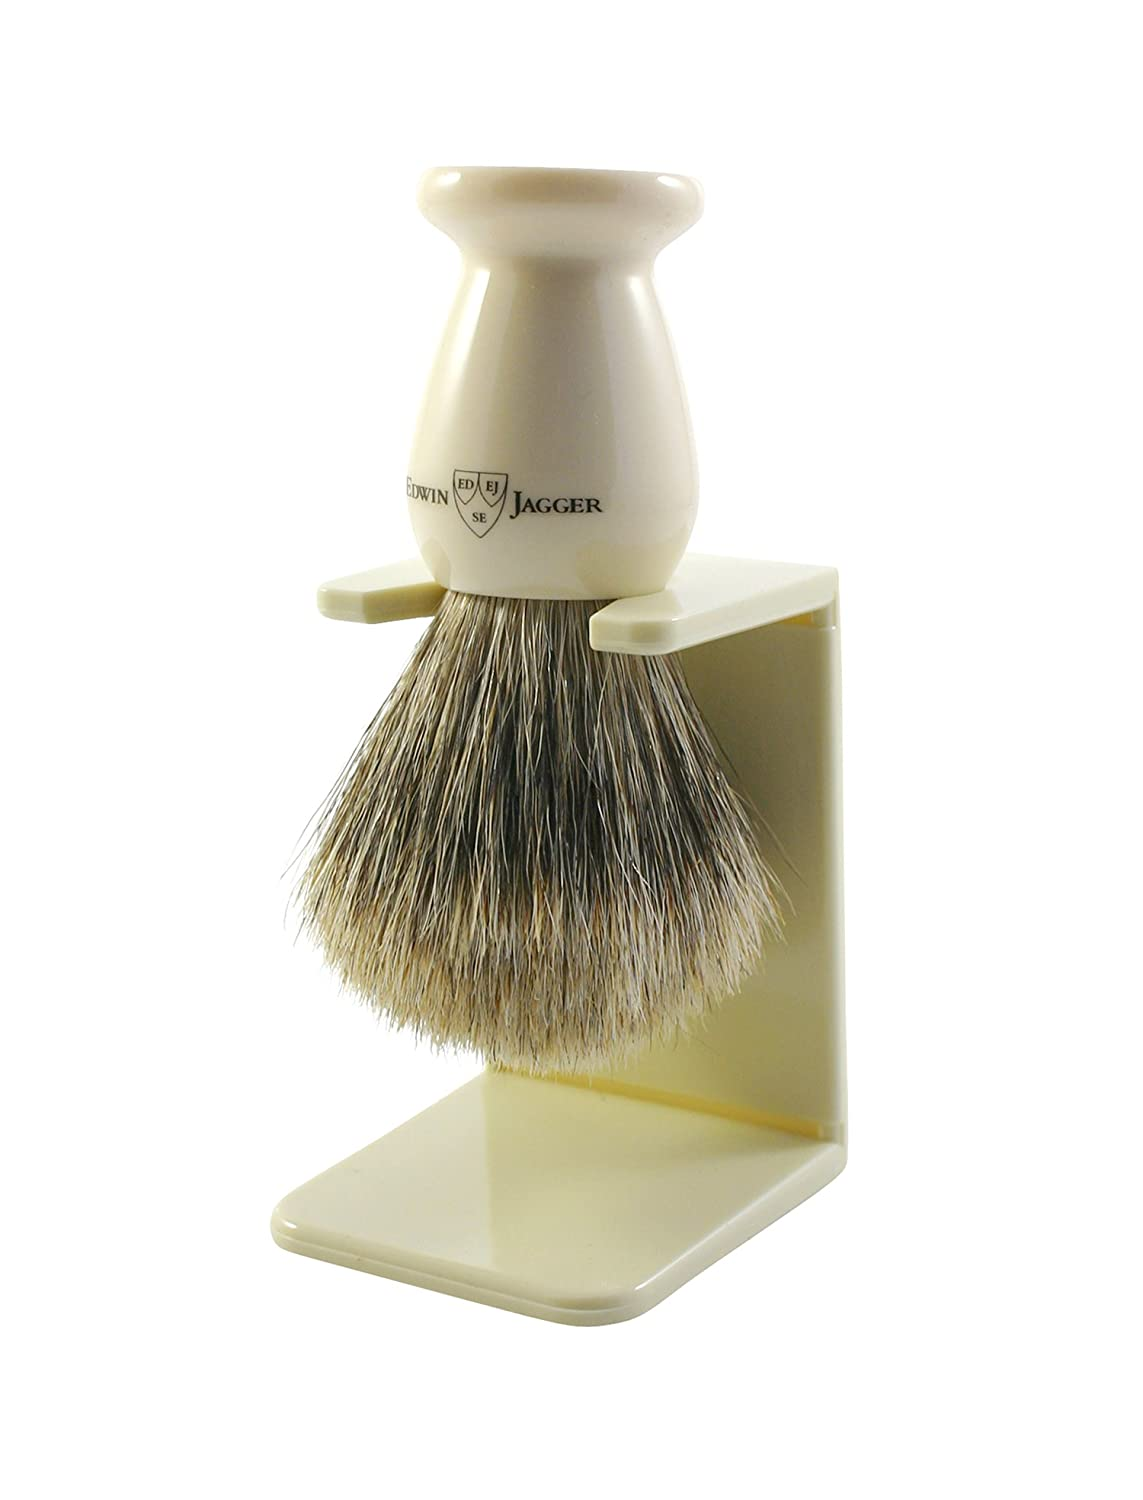 Edwin Jagger 9ej947sds Handmade Imitation Ivory Shaving Brush with Drip Stand, Ivory, Small 9EJ947SDSAMZ